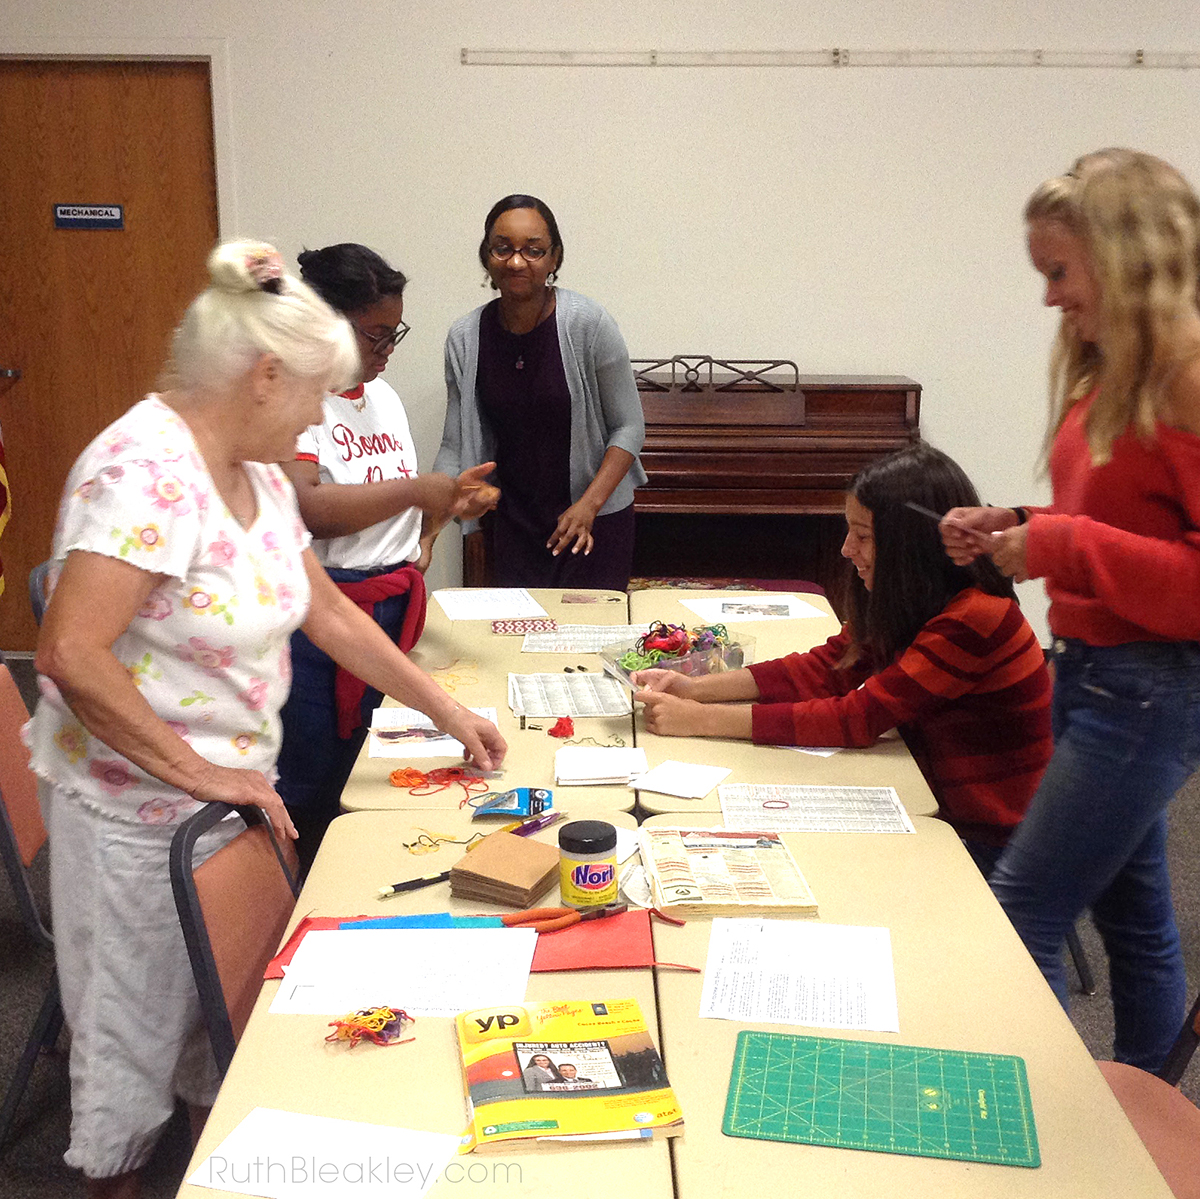 Japanese Bookbinding Class taught by Ruth Bleakley